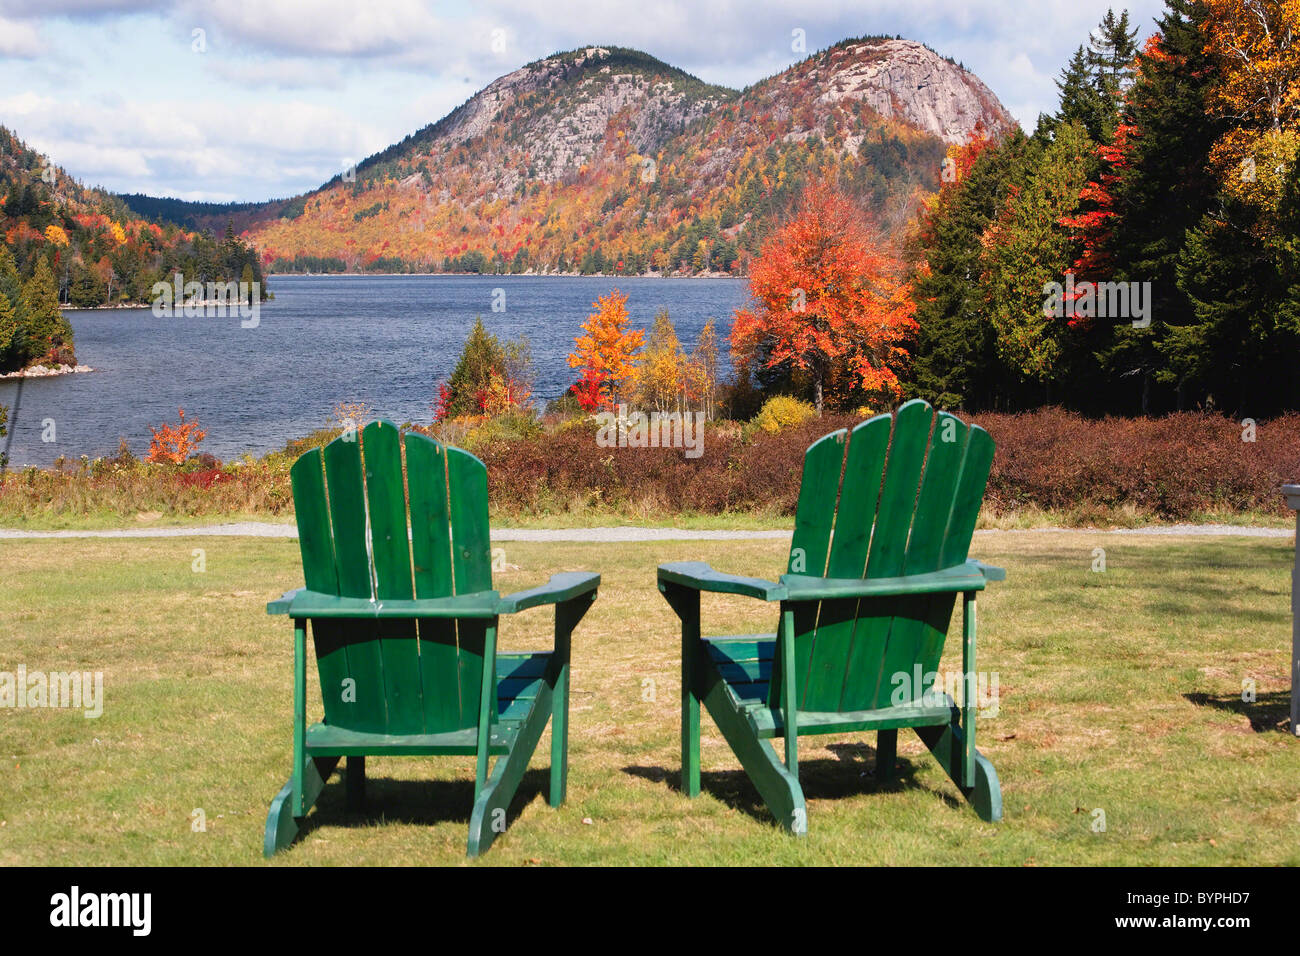 Fall Scenic With Adirondack Chairs At Jordan Pond, Acadia National Park,  Maine